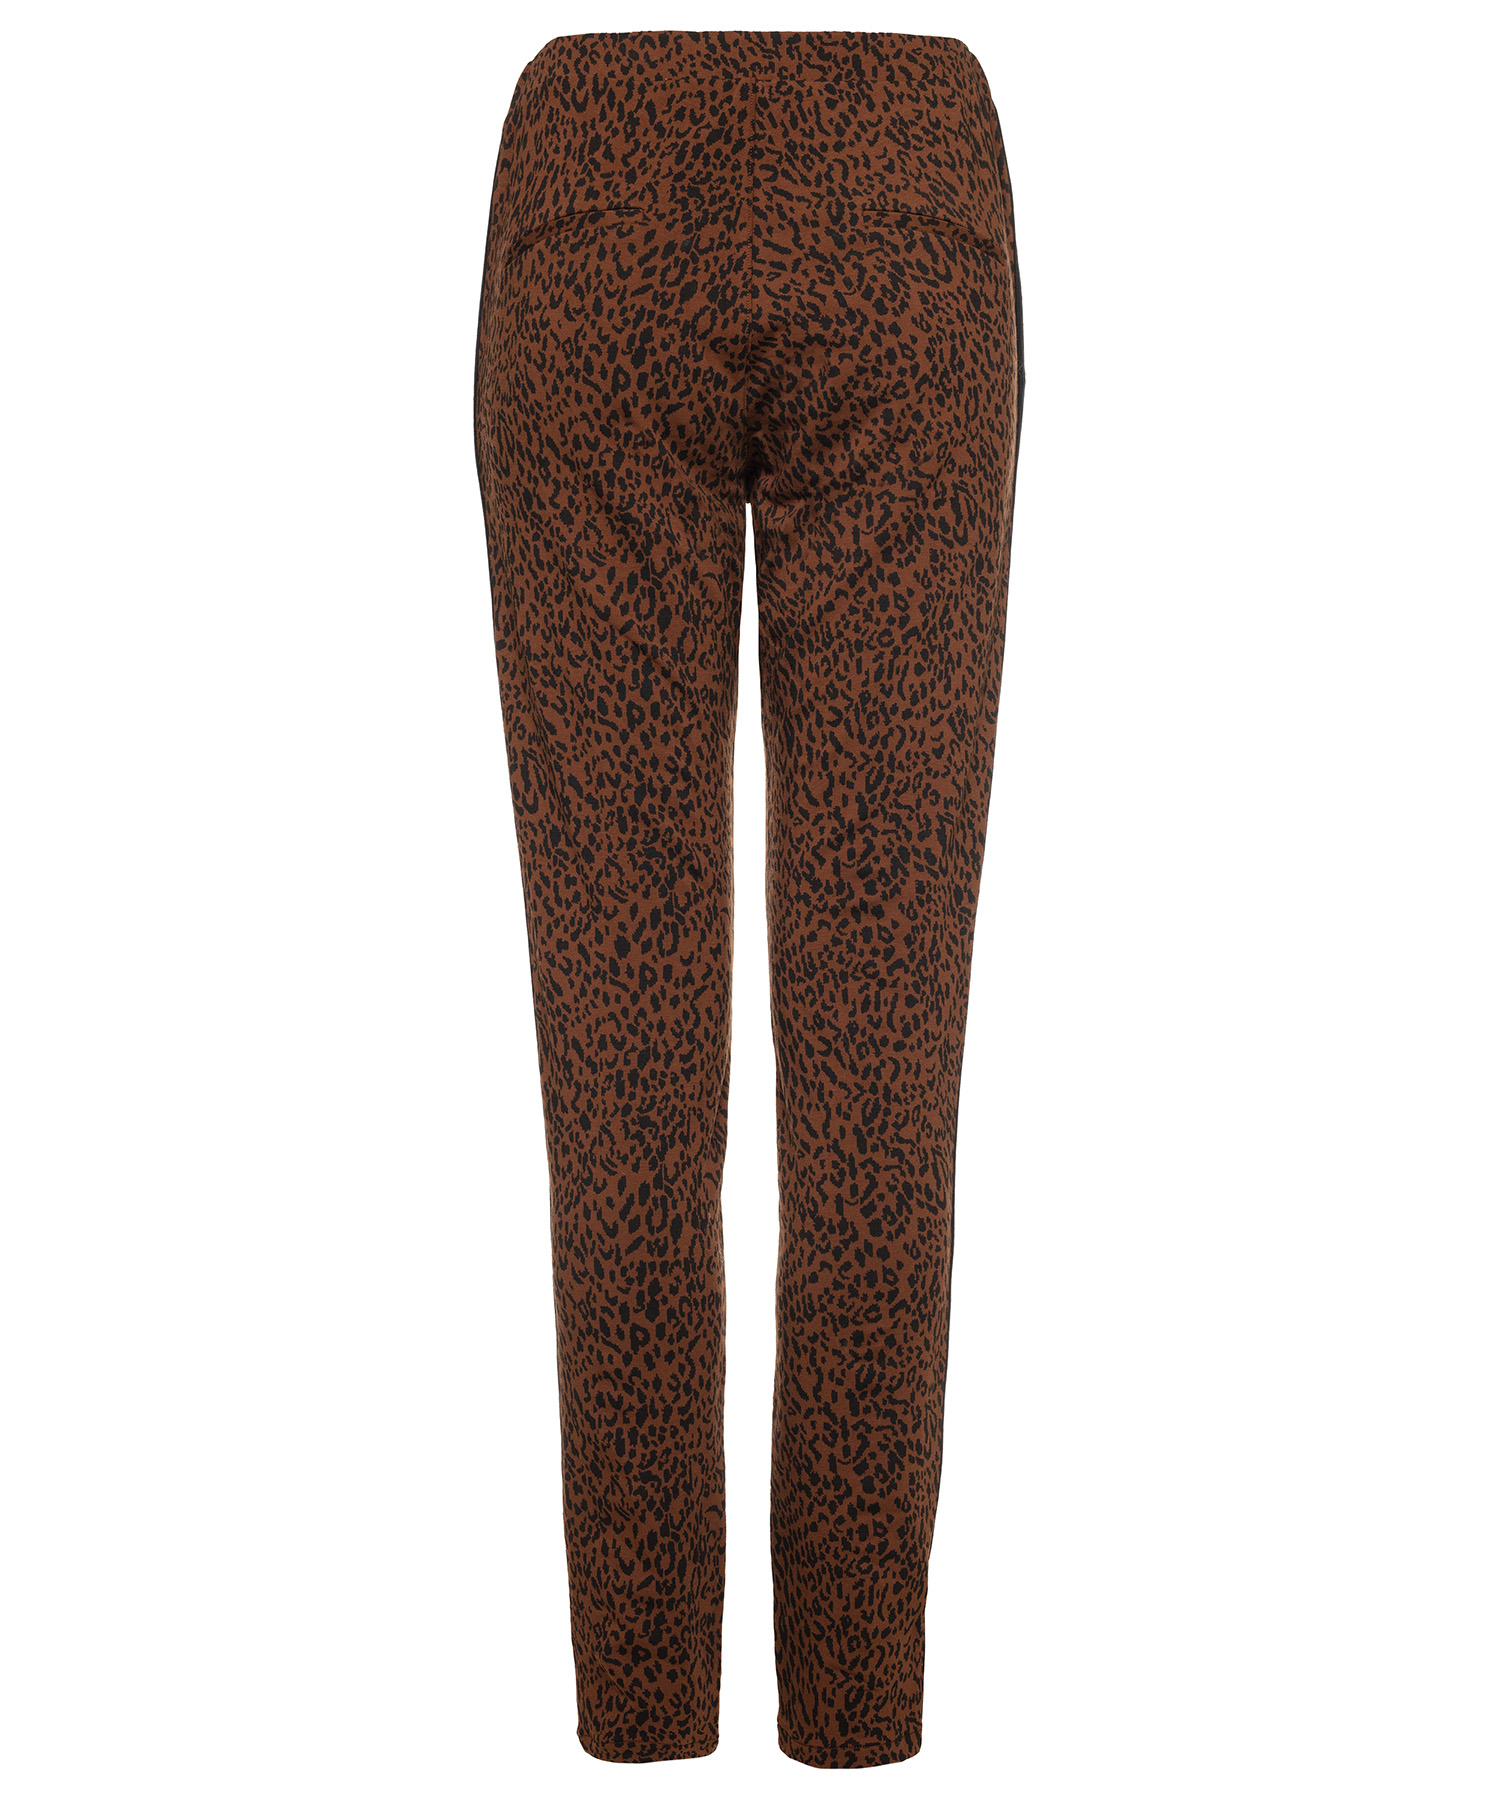 SWEAT PANT ALLOVER MIN. ANIMAL PRINT